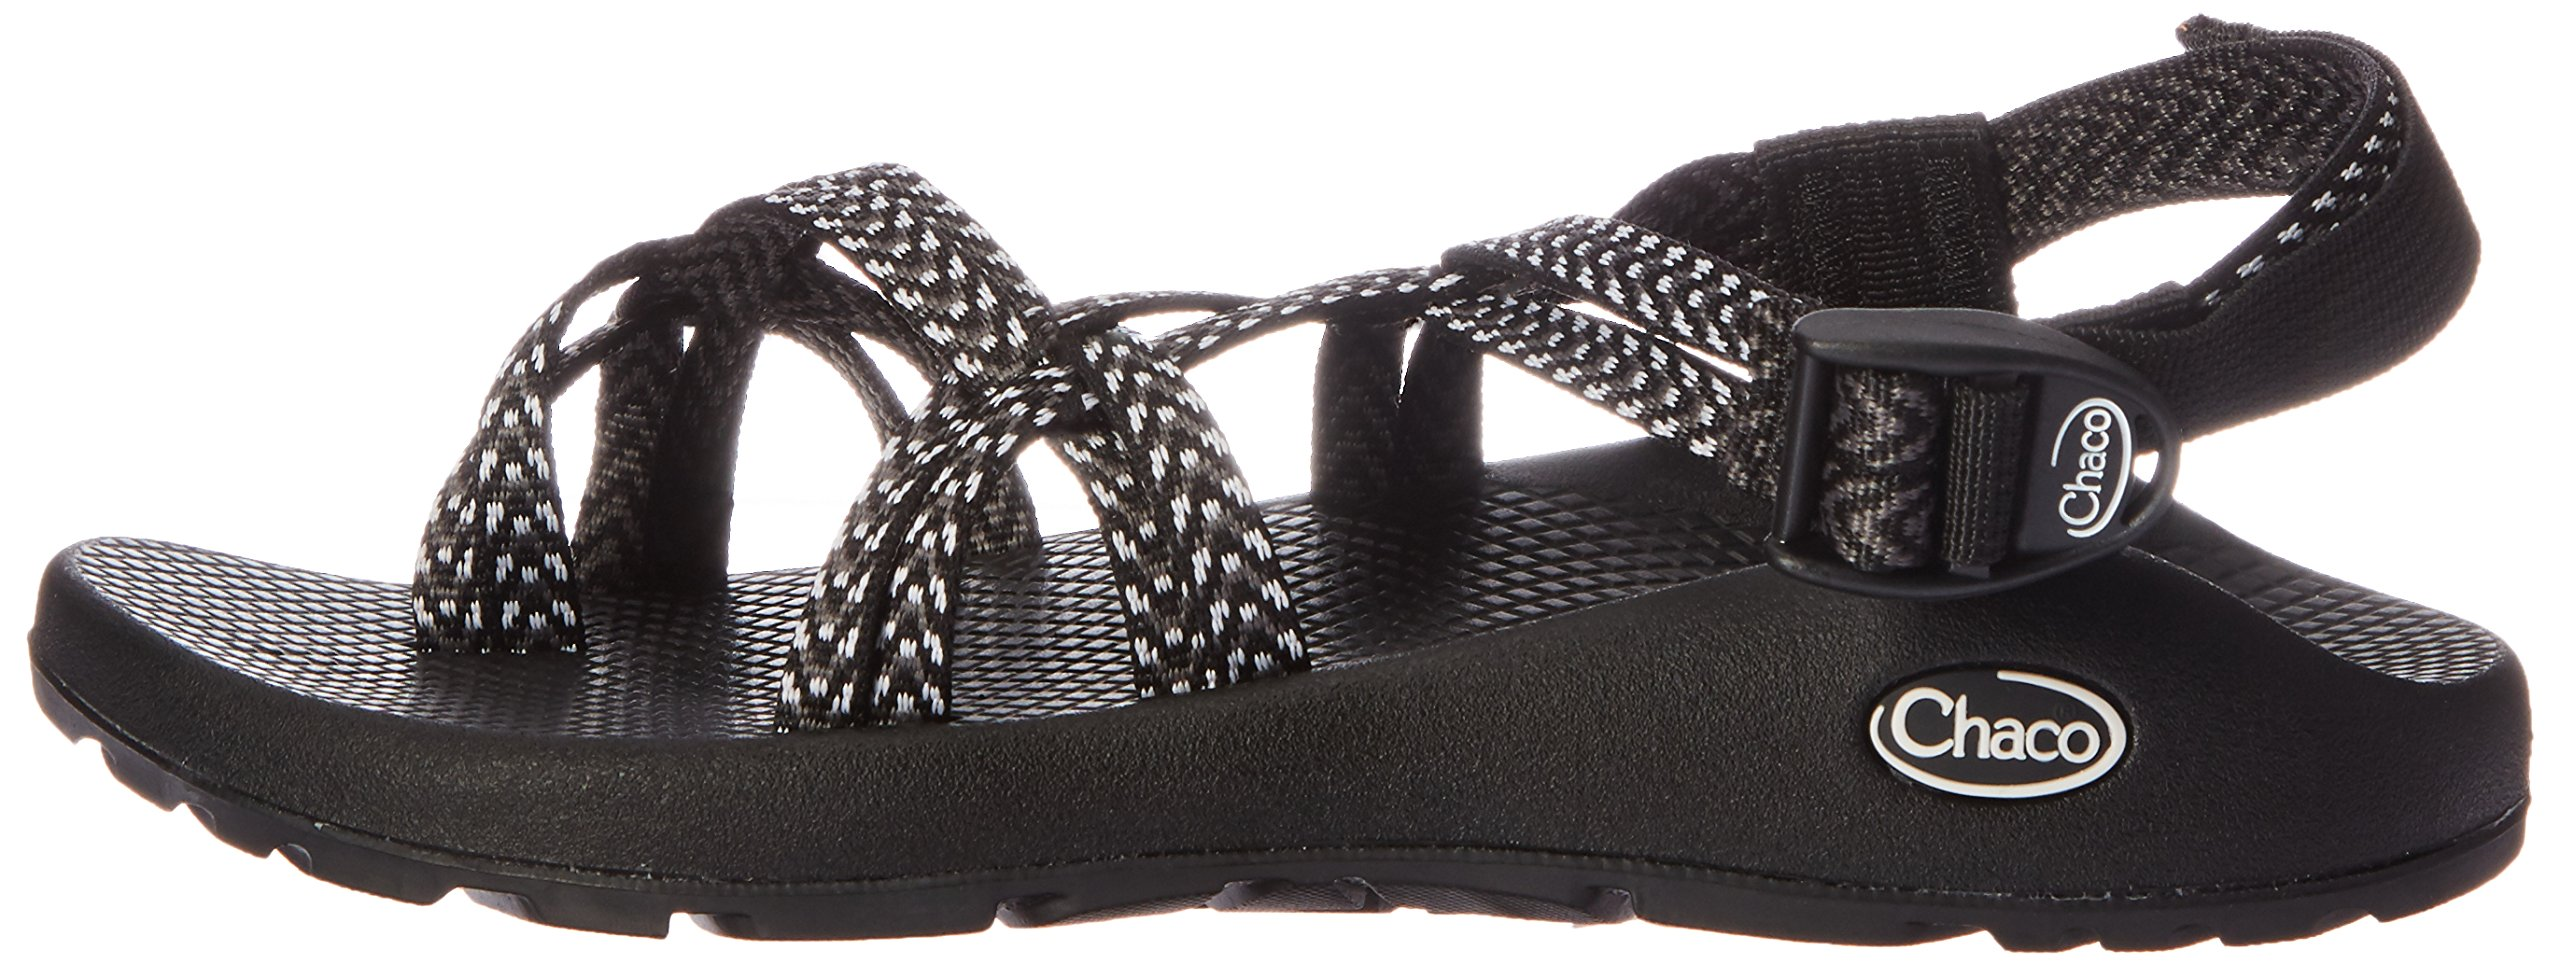 Chaco Women's ZX2 Classic Athletic Sandal, Boost Black, 7 M US by Chaco (Image #5)